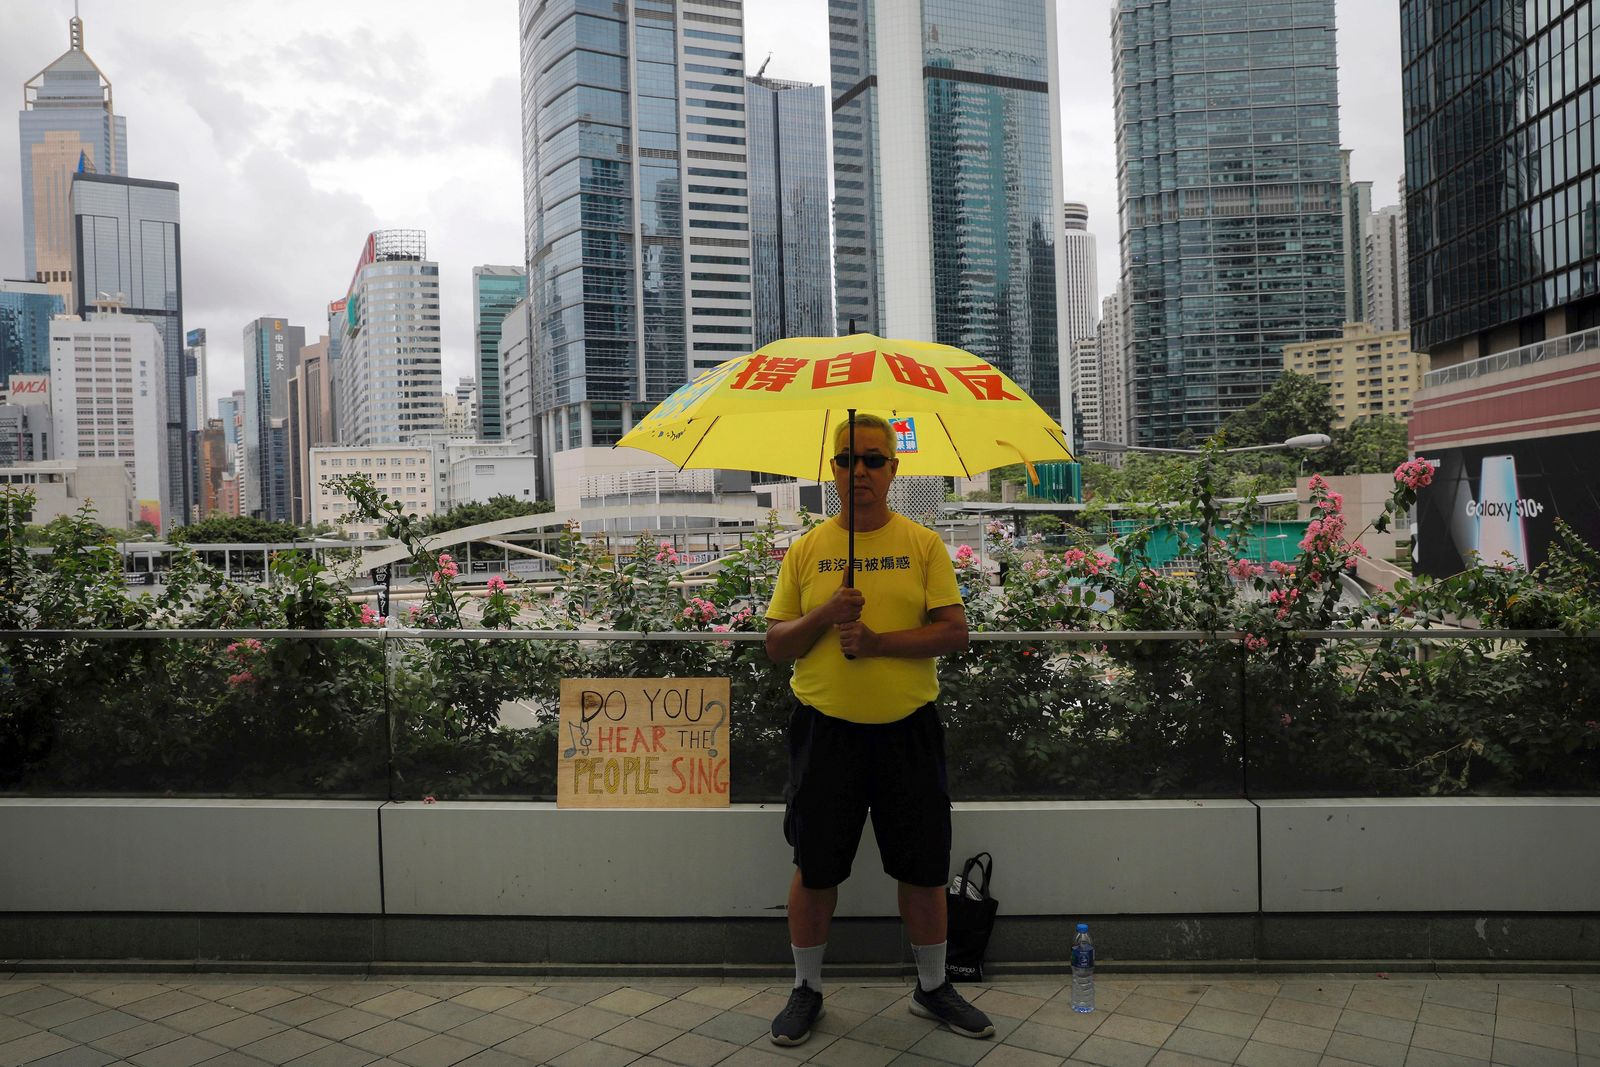 A man holds an umbrella outside the Legislative Council following last weekend's massive protest against the unpopular extradition bill in Hong Kong, Tuesday, June 18, 2019. Hong Kong's government headquarters reopened Tuesday as the number of protesters outside dwindled to a few dozen and life returned to normal in the former British colony. (AP Photo/Vincent Yu)